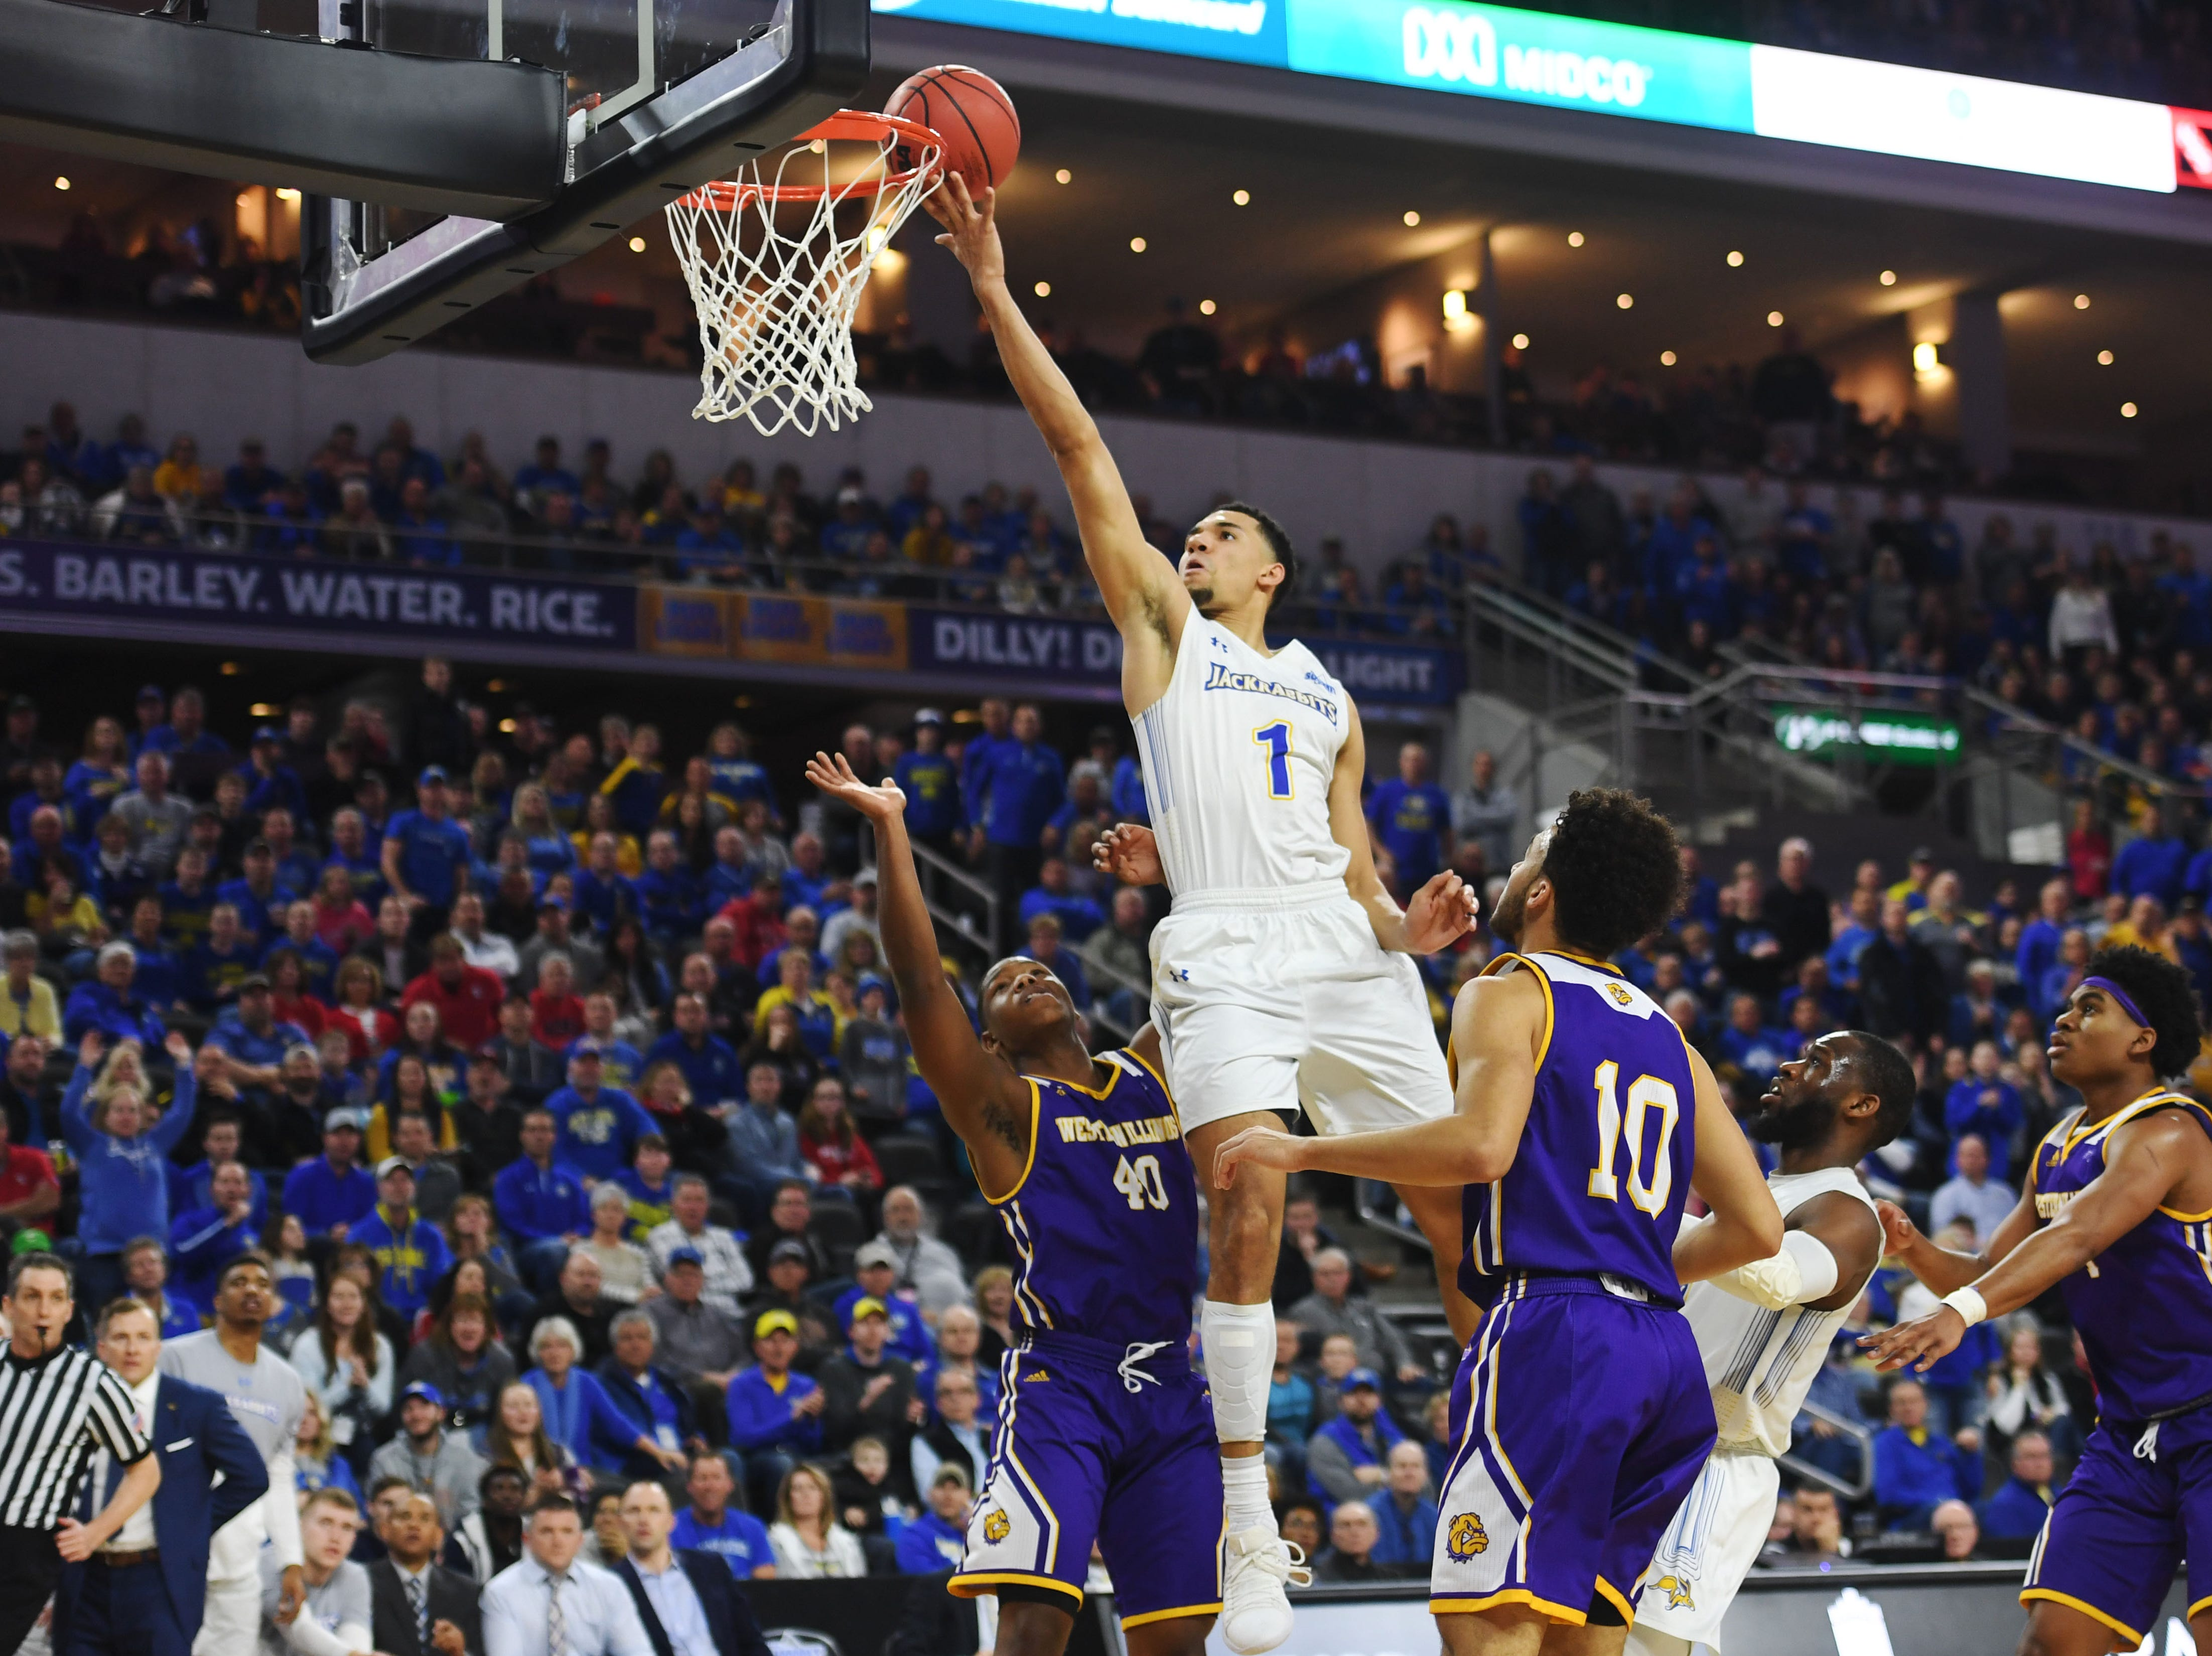 SDSU's Skyler Flatten scores against Western Illinois during the game Saturday, March 9, in the Summit League tournament at the Denny Sanford Premier Center in Sioux Falls.